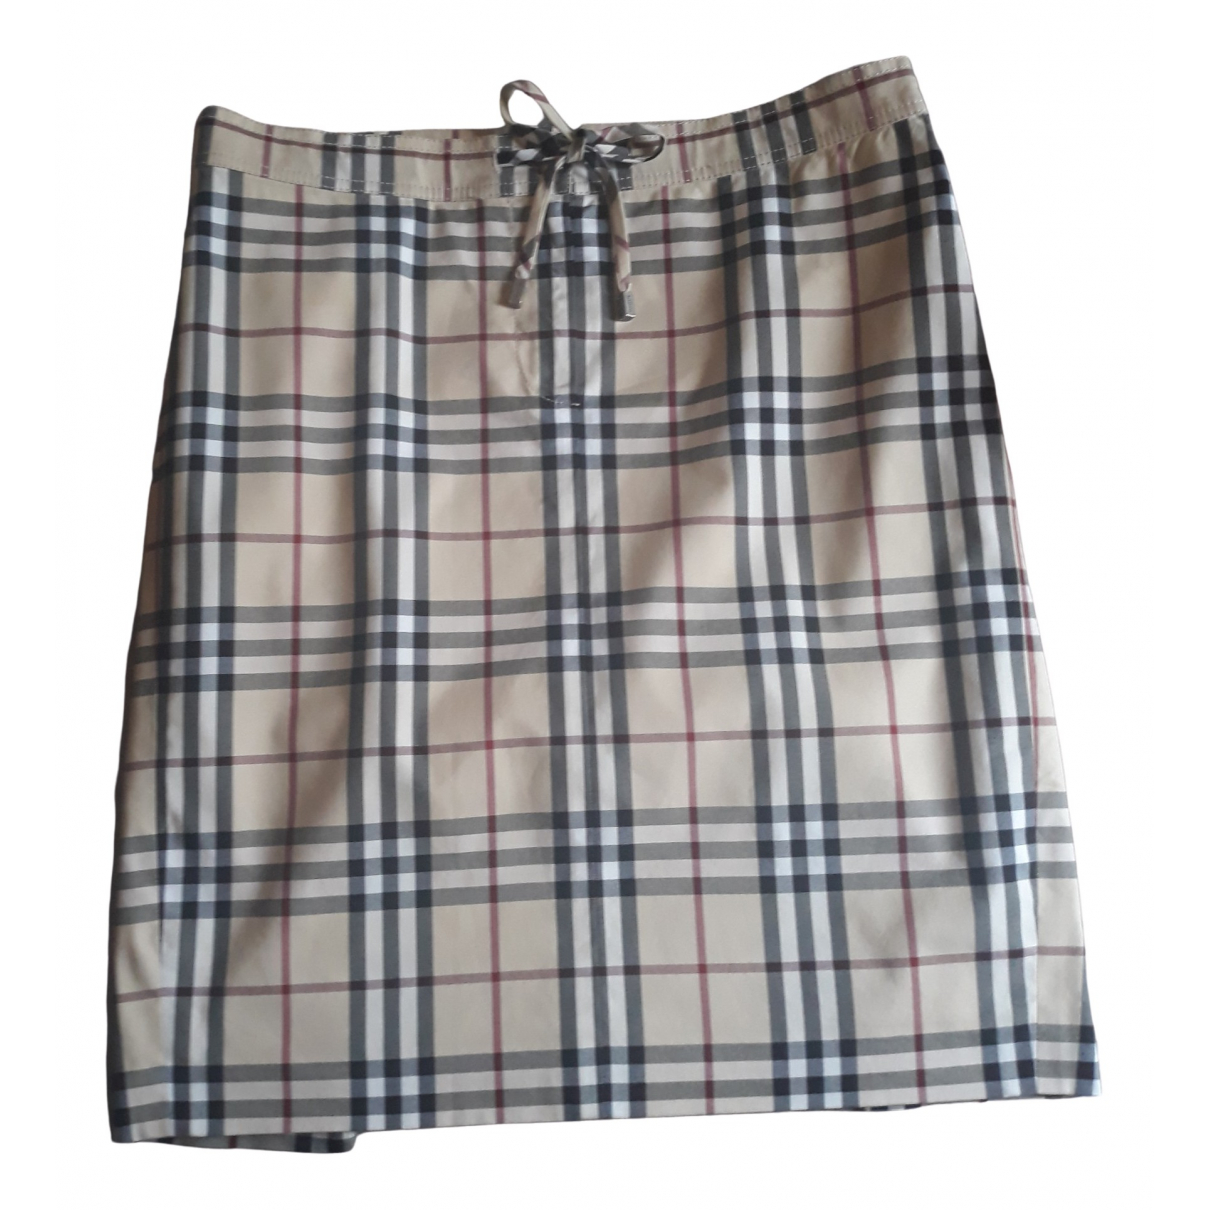 Burberry \N Beige Cotton skirt for Women 12 UK